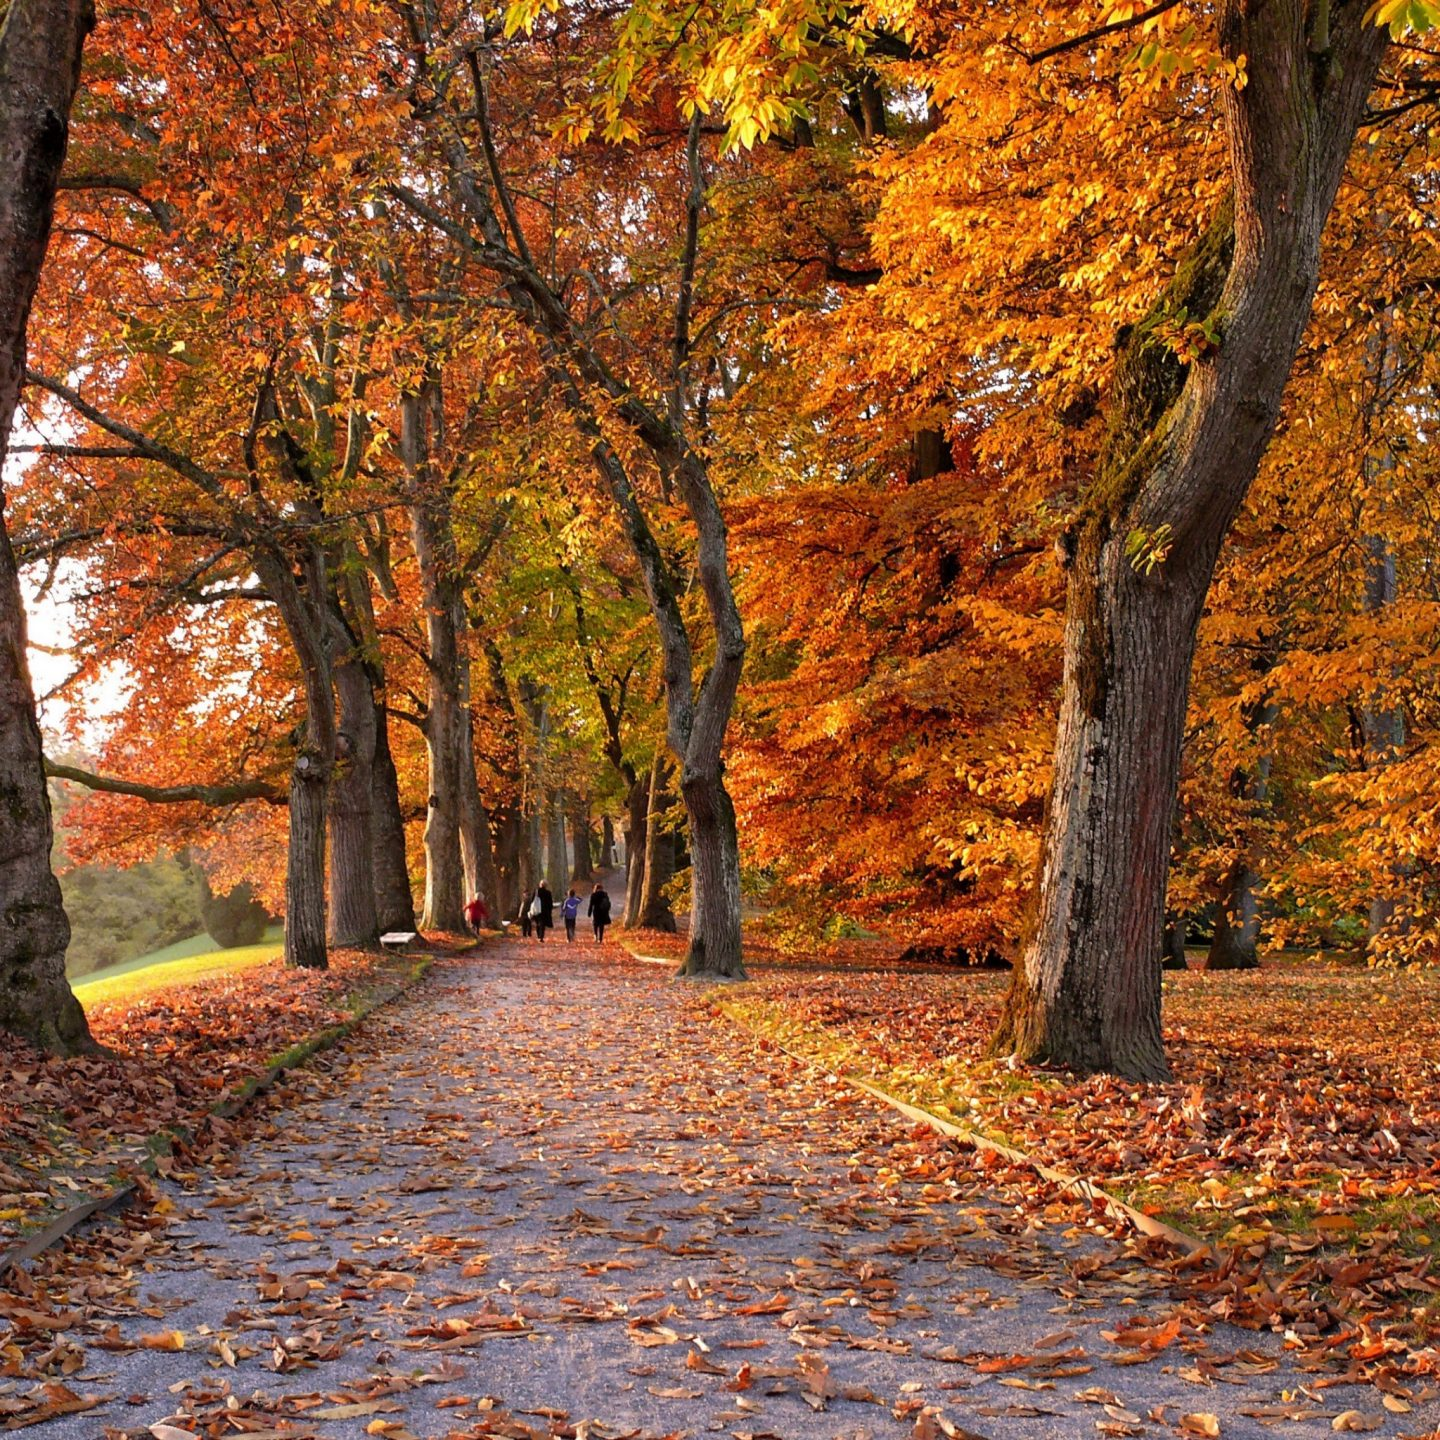 5 Outdoor Activities To Enjoy In Autumn